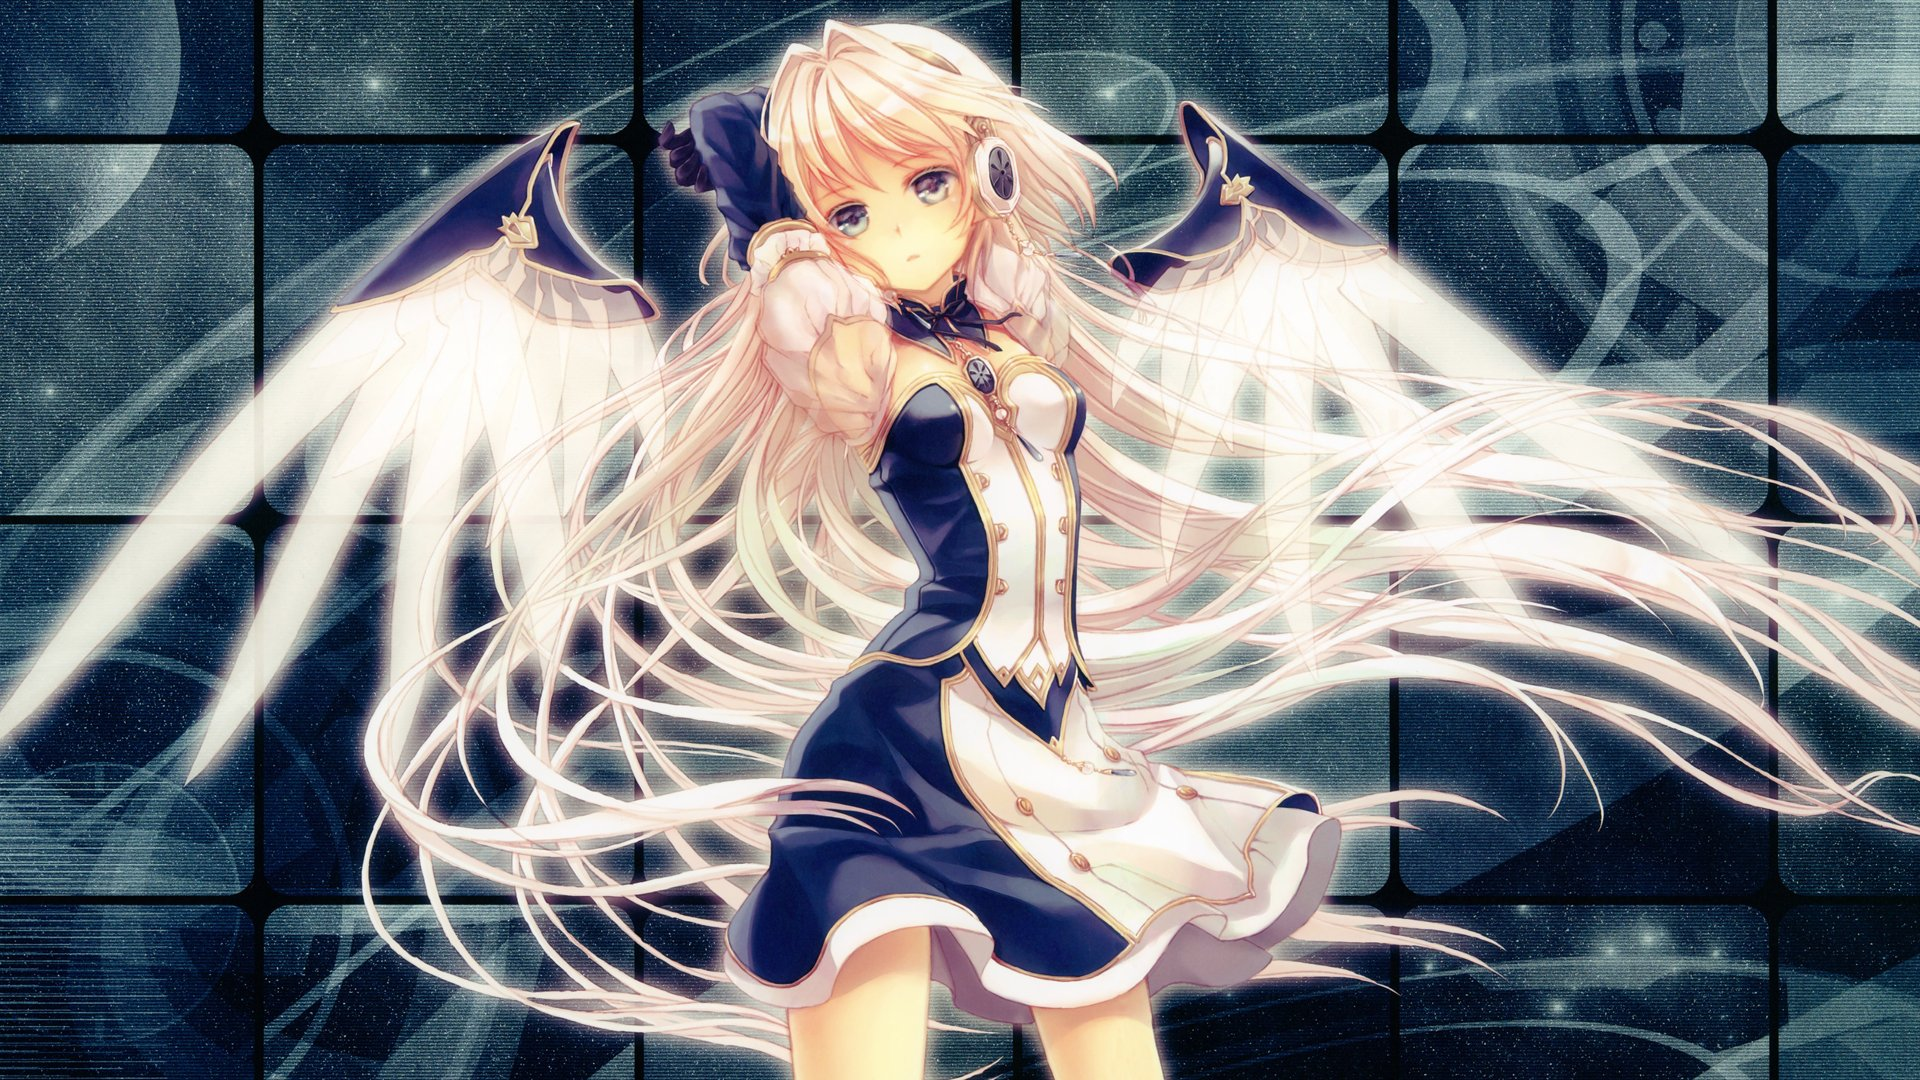 Anime Angel Girl Wallpaper